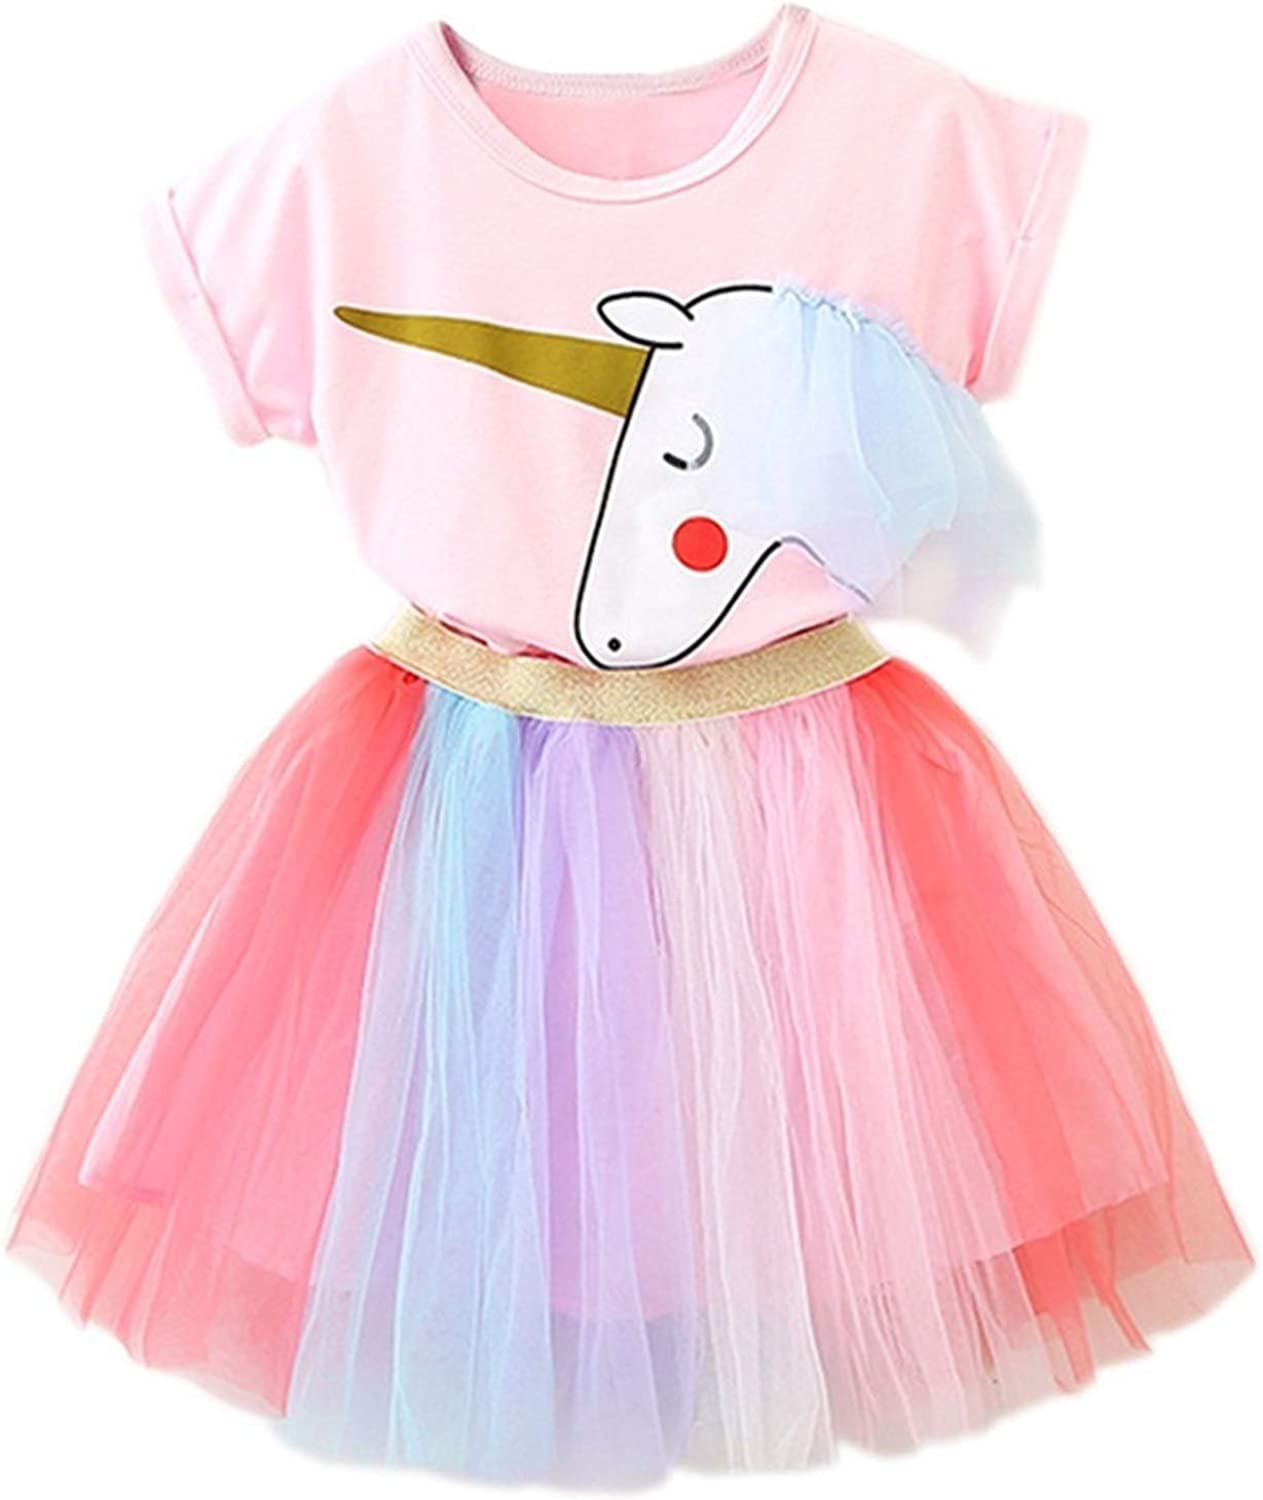 TTYAOVO Little Girls Casual Dress Sets Super popular specialty store Outfits half Holiday